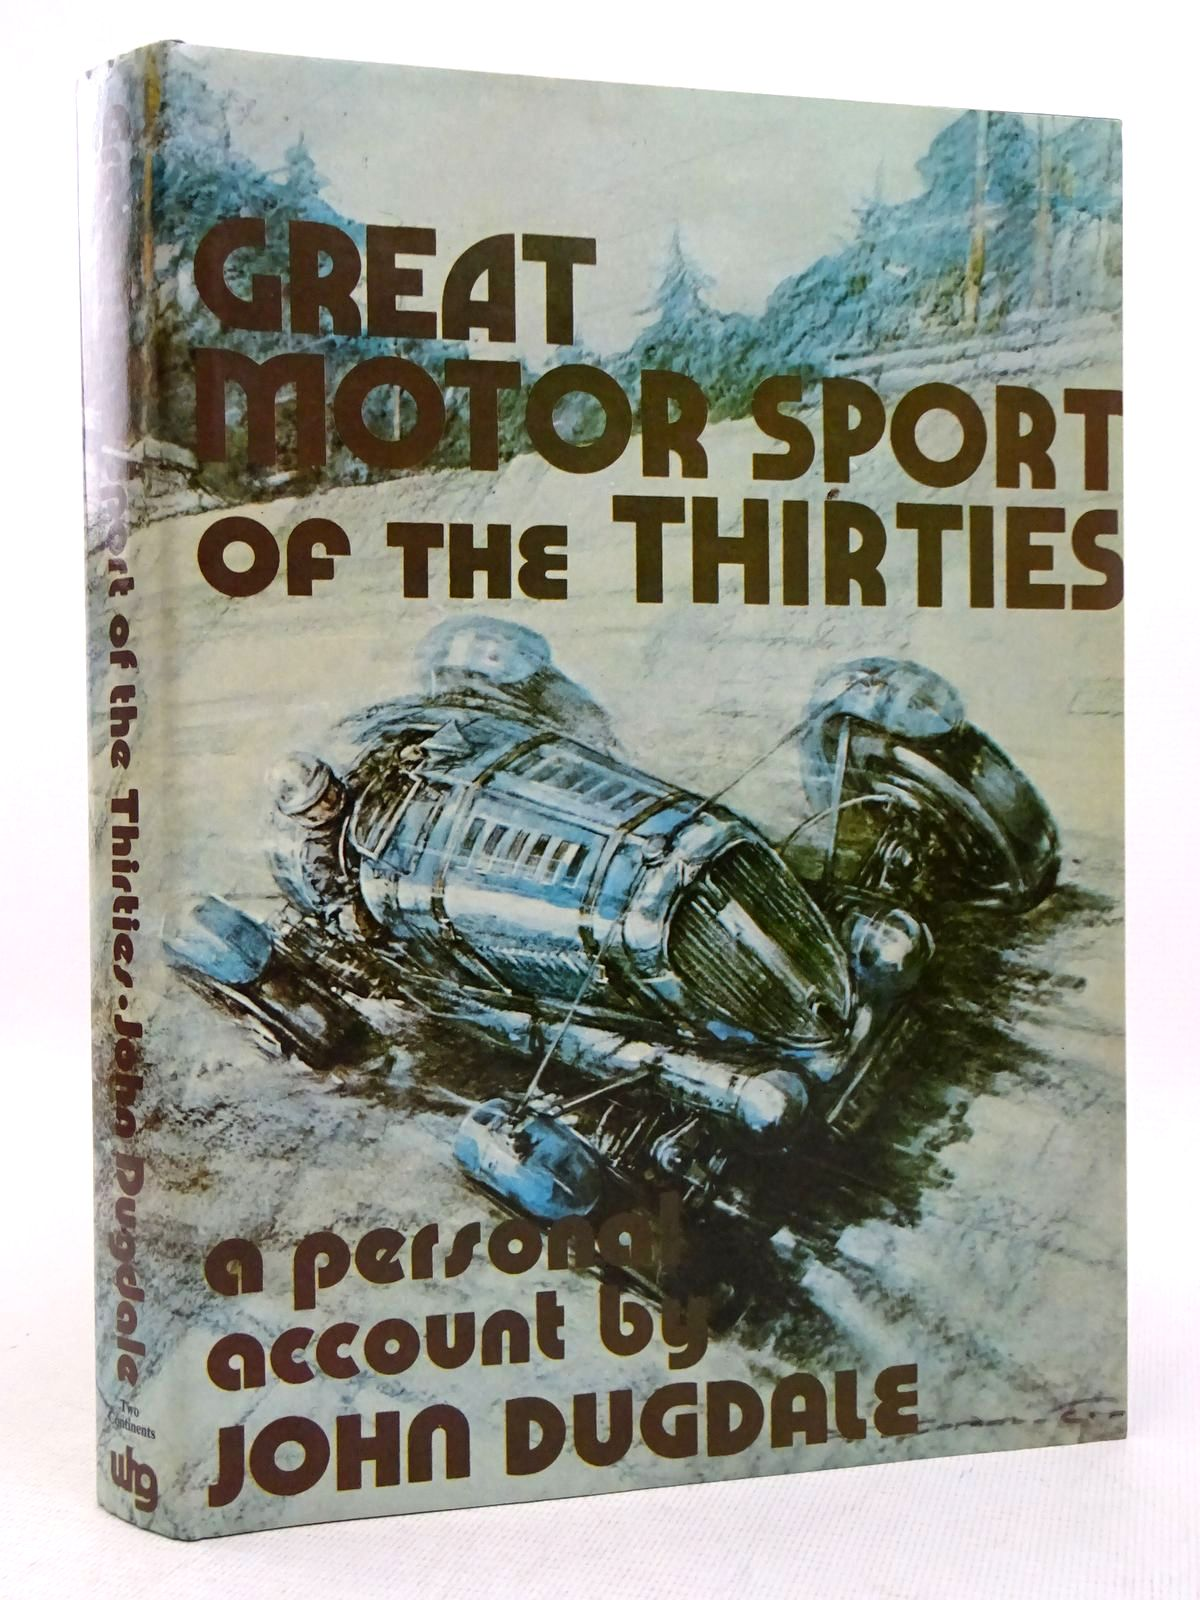 Photo of GREAT MOTOR SPORT OF THE THIRTIES: A PERSONAL ACCOUNT written by Dugdale, John published by Wilton House Gentry (STOCK CODE: 1817149)  for sale by Stella & Rose's Books